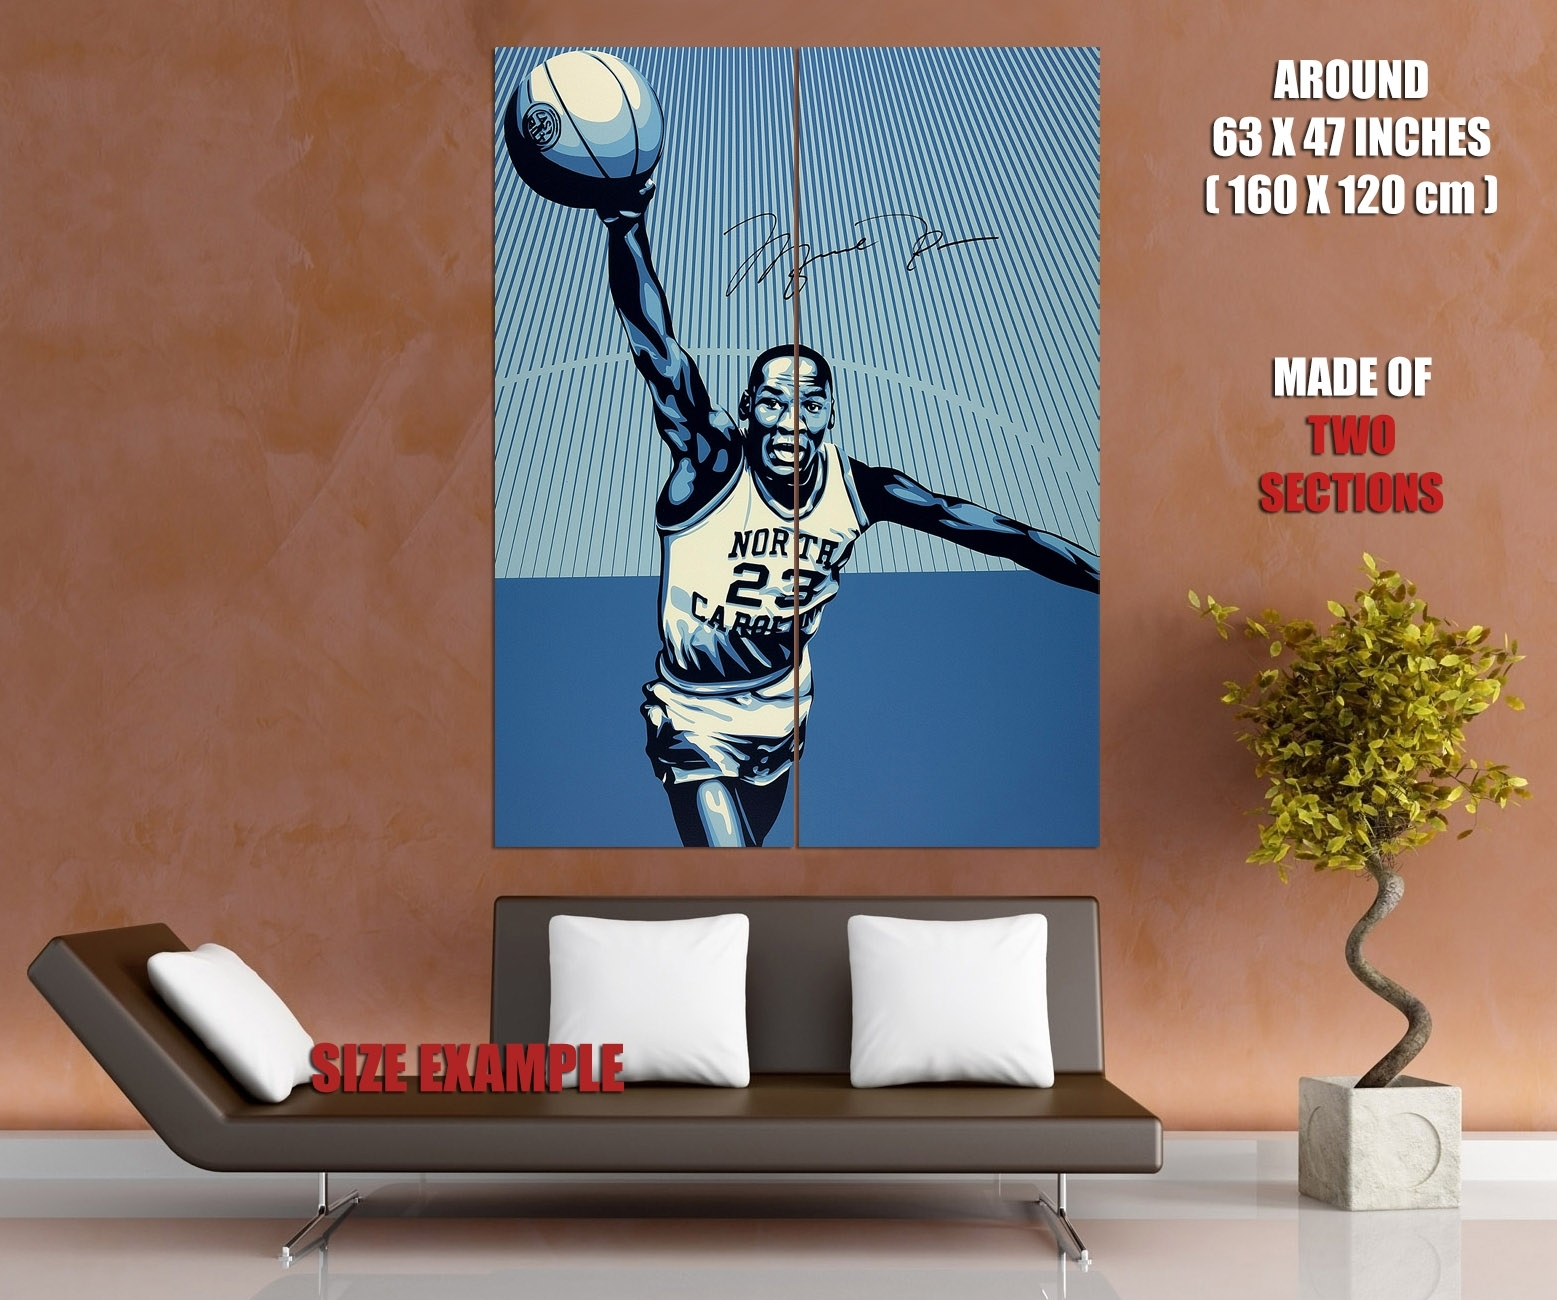 Michael Jordan North Carolina Retro Basketball Huge Giant Wall Print Pertaining To Most Recent North Carolina Wall Art (Gallery 12 of 20)